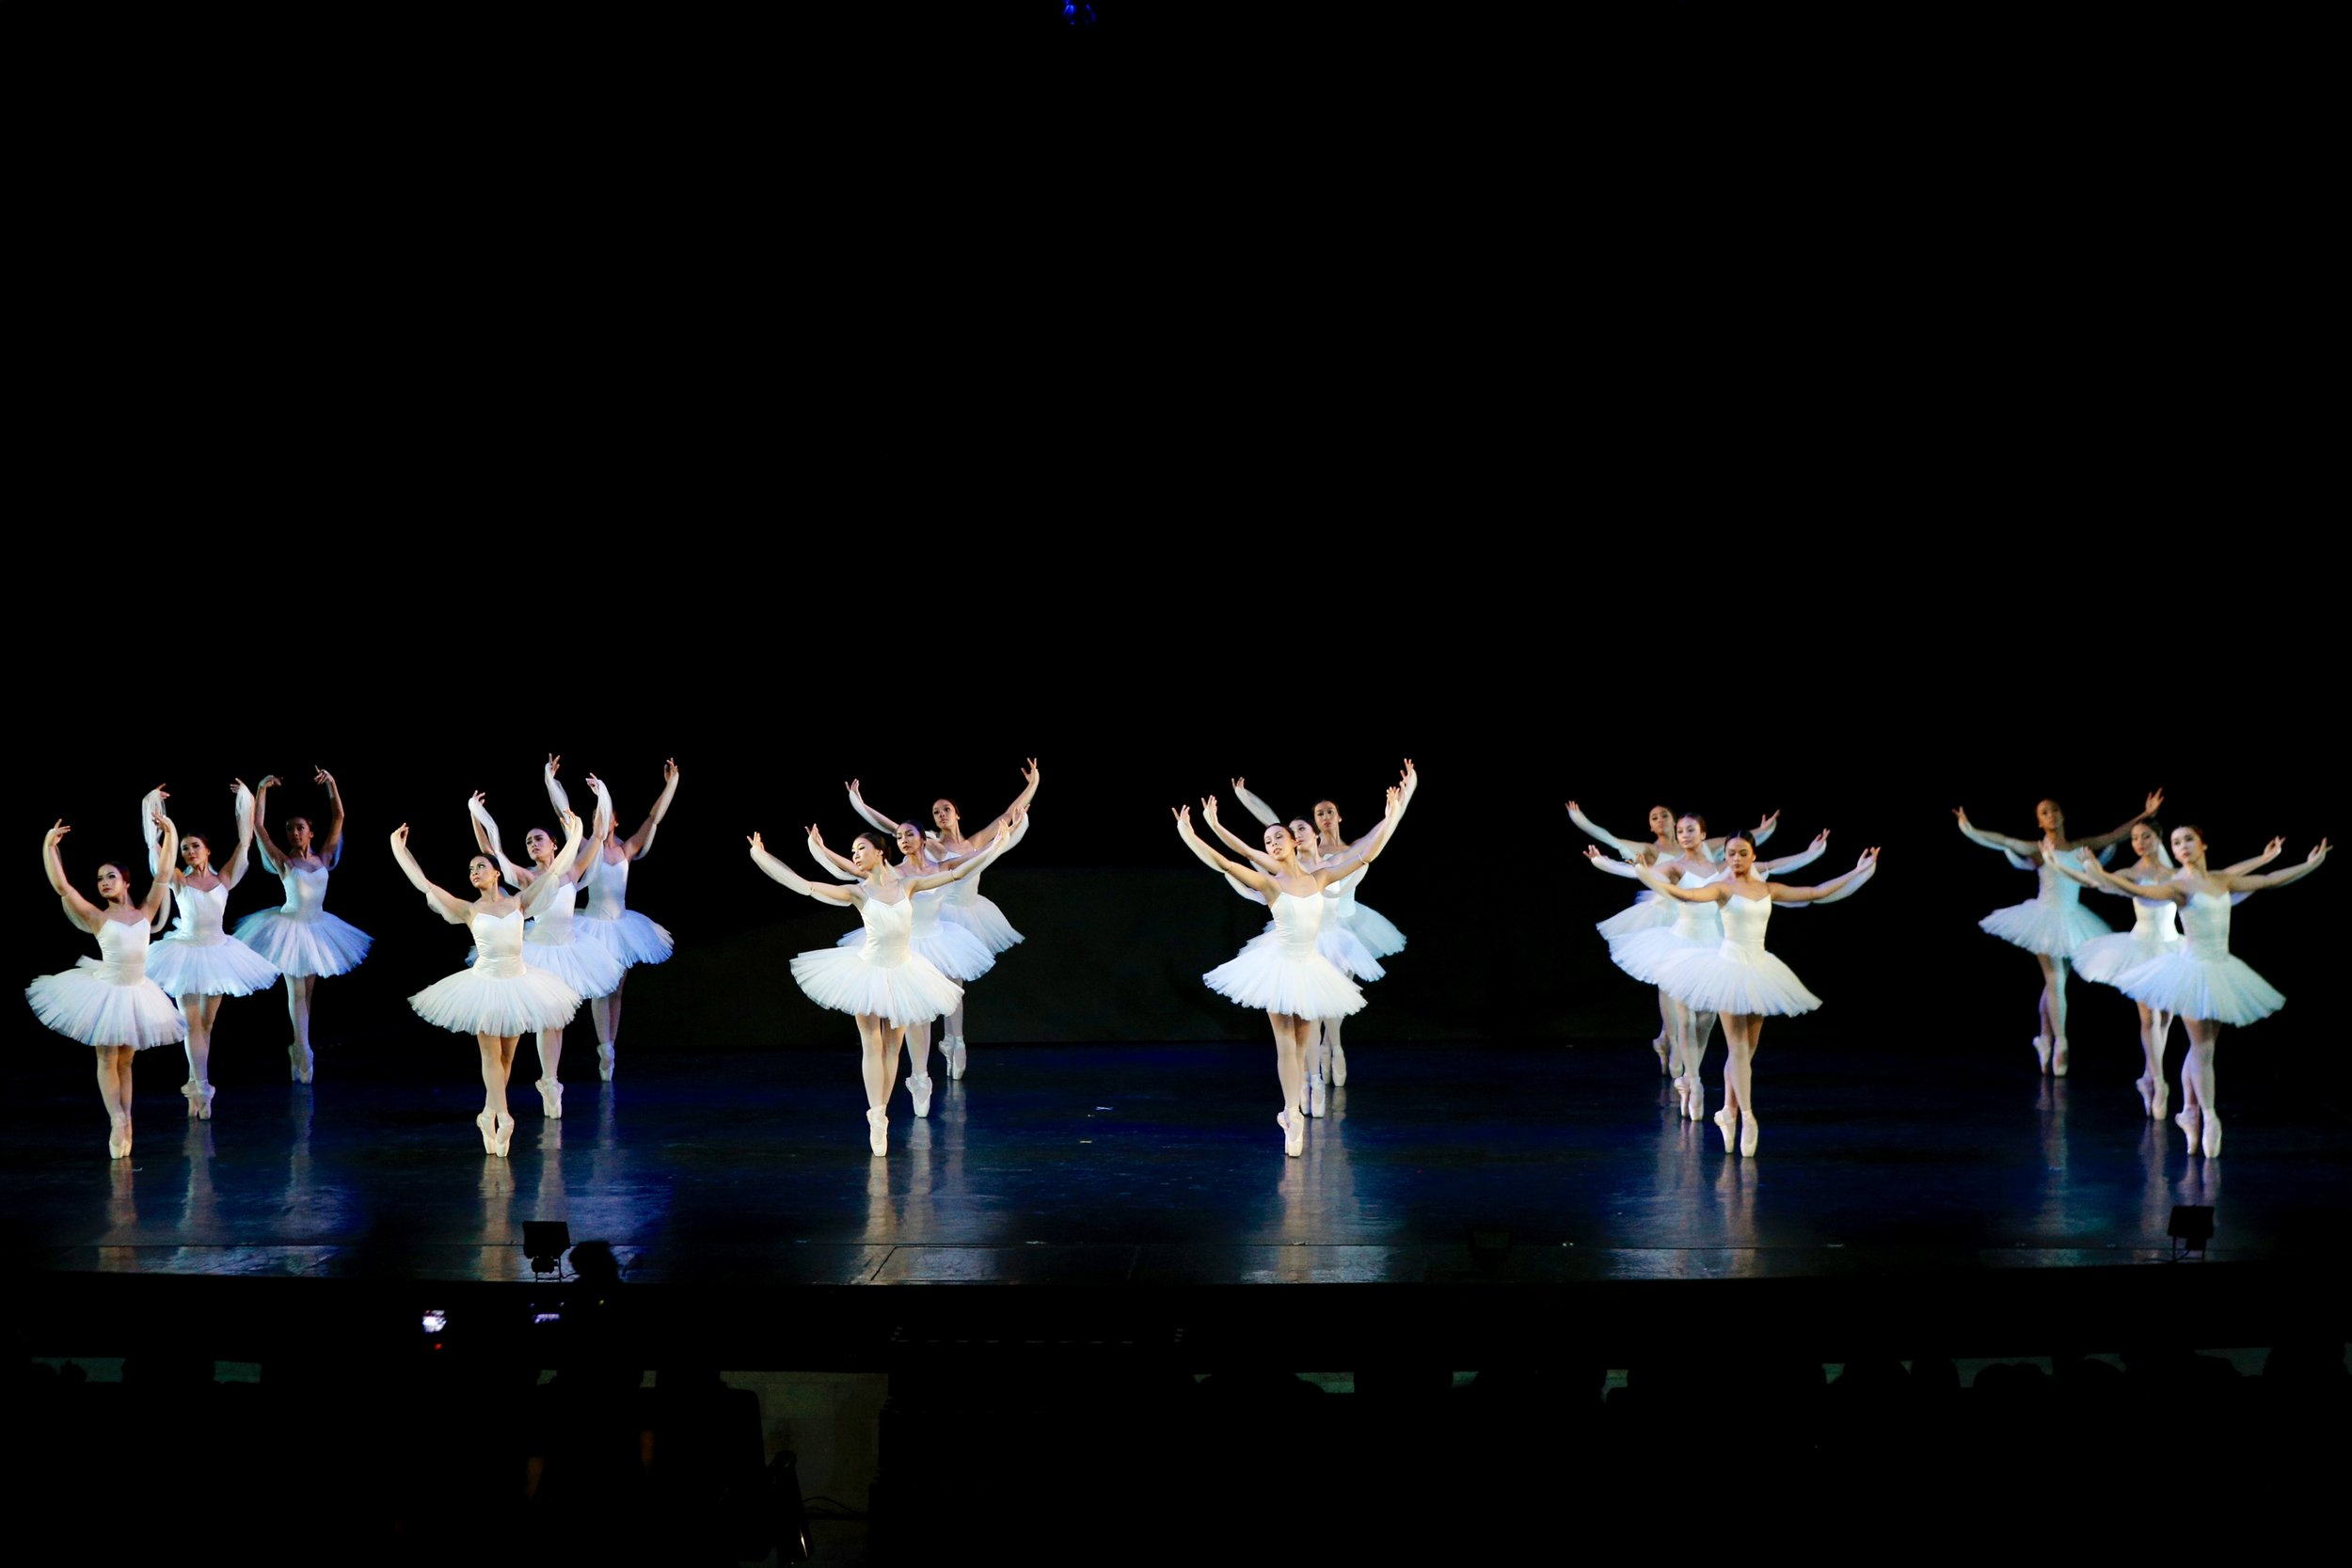 Classical pieces, in particular, require a tremendous amount of harmony in movement especially among the corps. In Ballet Manila's performance of the Kingdom of the Shades from    La Bayadere   , the female corps delivers a very precise yet nuanced rendition of this choreography, moving as a single unit to create this ethereal and haunting scene. Photo by Kurt Alvarez from the Ballet Manila Archives collection